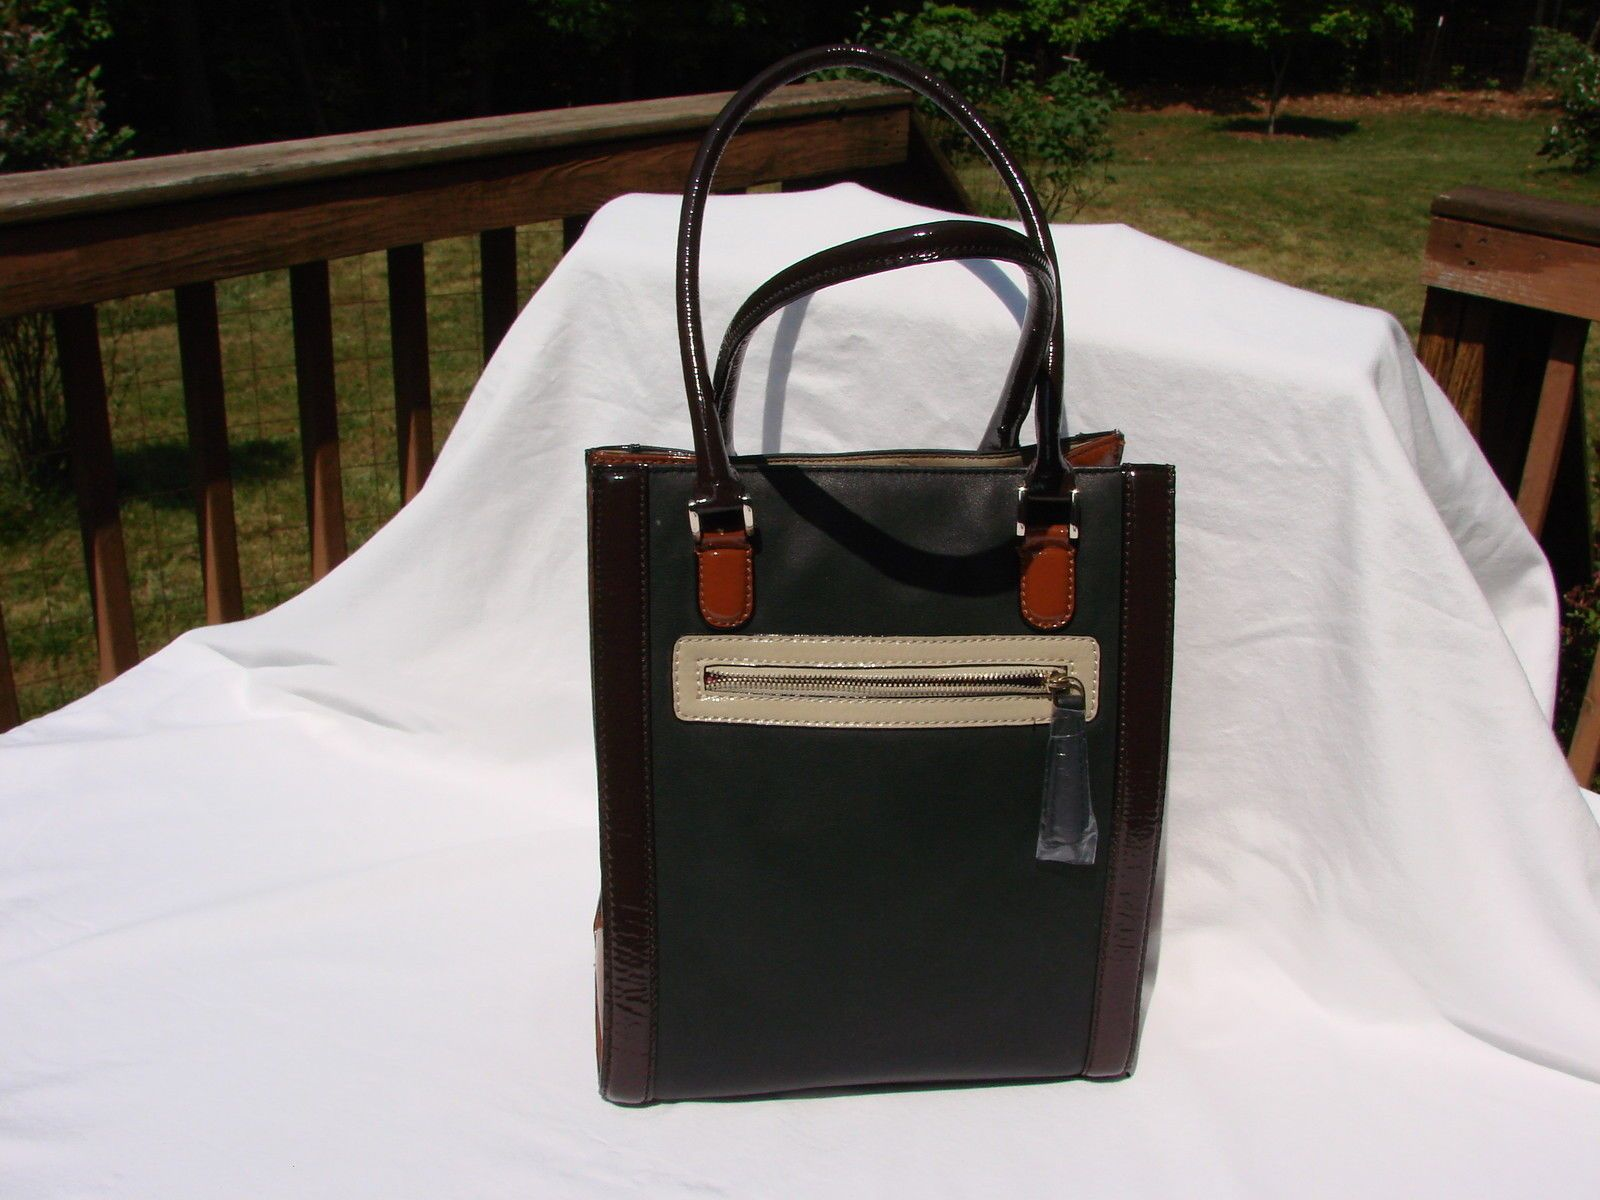 40f999aa7c Guess Purse New With Tags Perfect L  K  39.5. Guess Purse New With Tags  Perfect L  K  39.5. GUESS Triangle Logo Brown Black Large Tote Delaney Bag